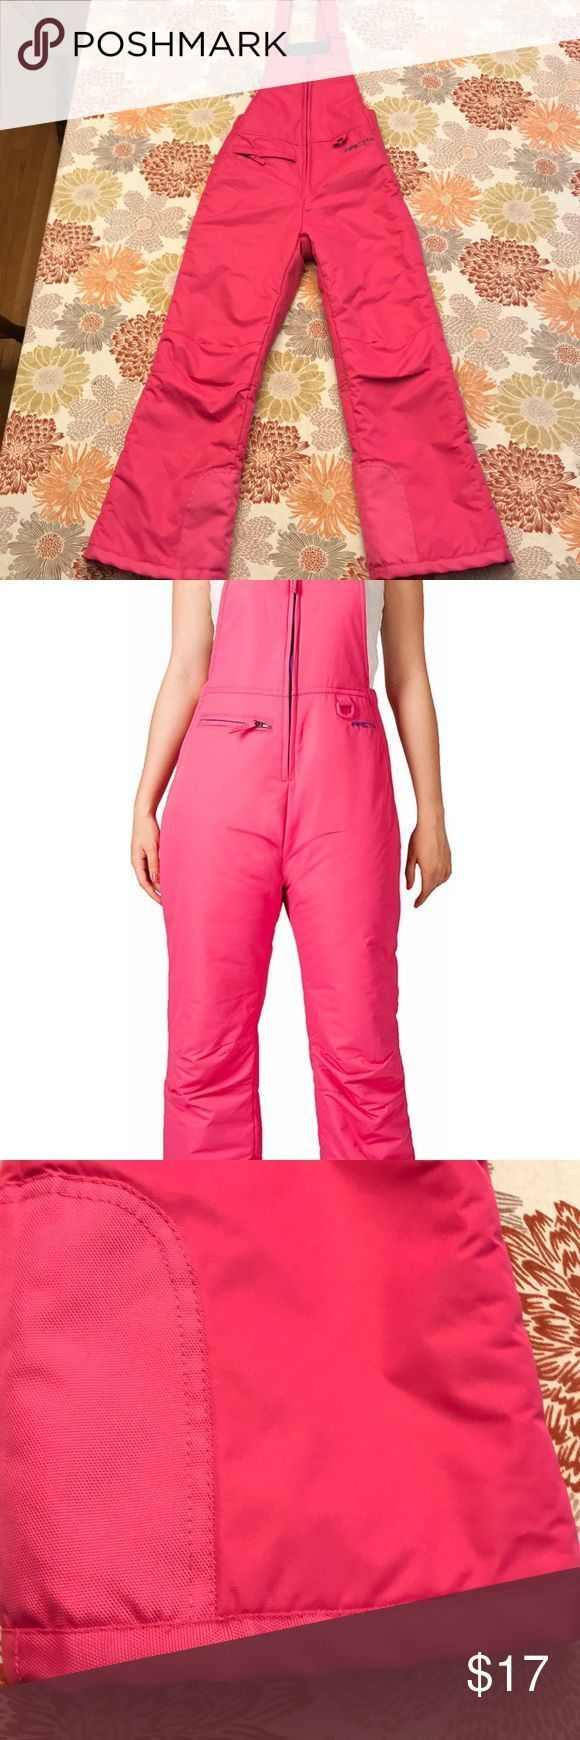 Fuchsia Artix adjustable bib snow pant neverworn Hot pink Artix overall bib snow pant size S ... #trapsworkout Fuchsia Artix adjustable bib snow pant neverworn Hot pink Artix overall bib snow pant size S - never worn  Why buy new? The multi-layered construction of these ... | Advanced Trap Workout | Quad workout | Trapezius Exercises . #muscle #My Posh Picks #trapsworkout Fuchsia Artix adjustable bib snow pant neverworn Hot pink Artix overall bib snow pant size S ... #trapsworkout Fuchsia Artix #trapsworkout